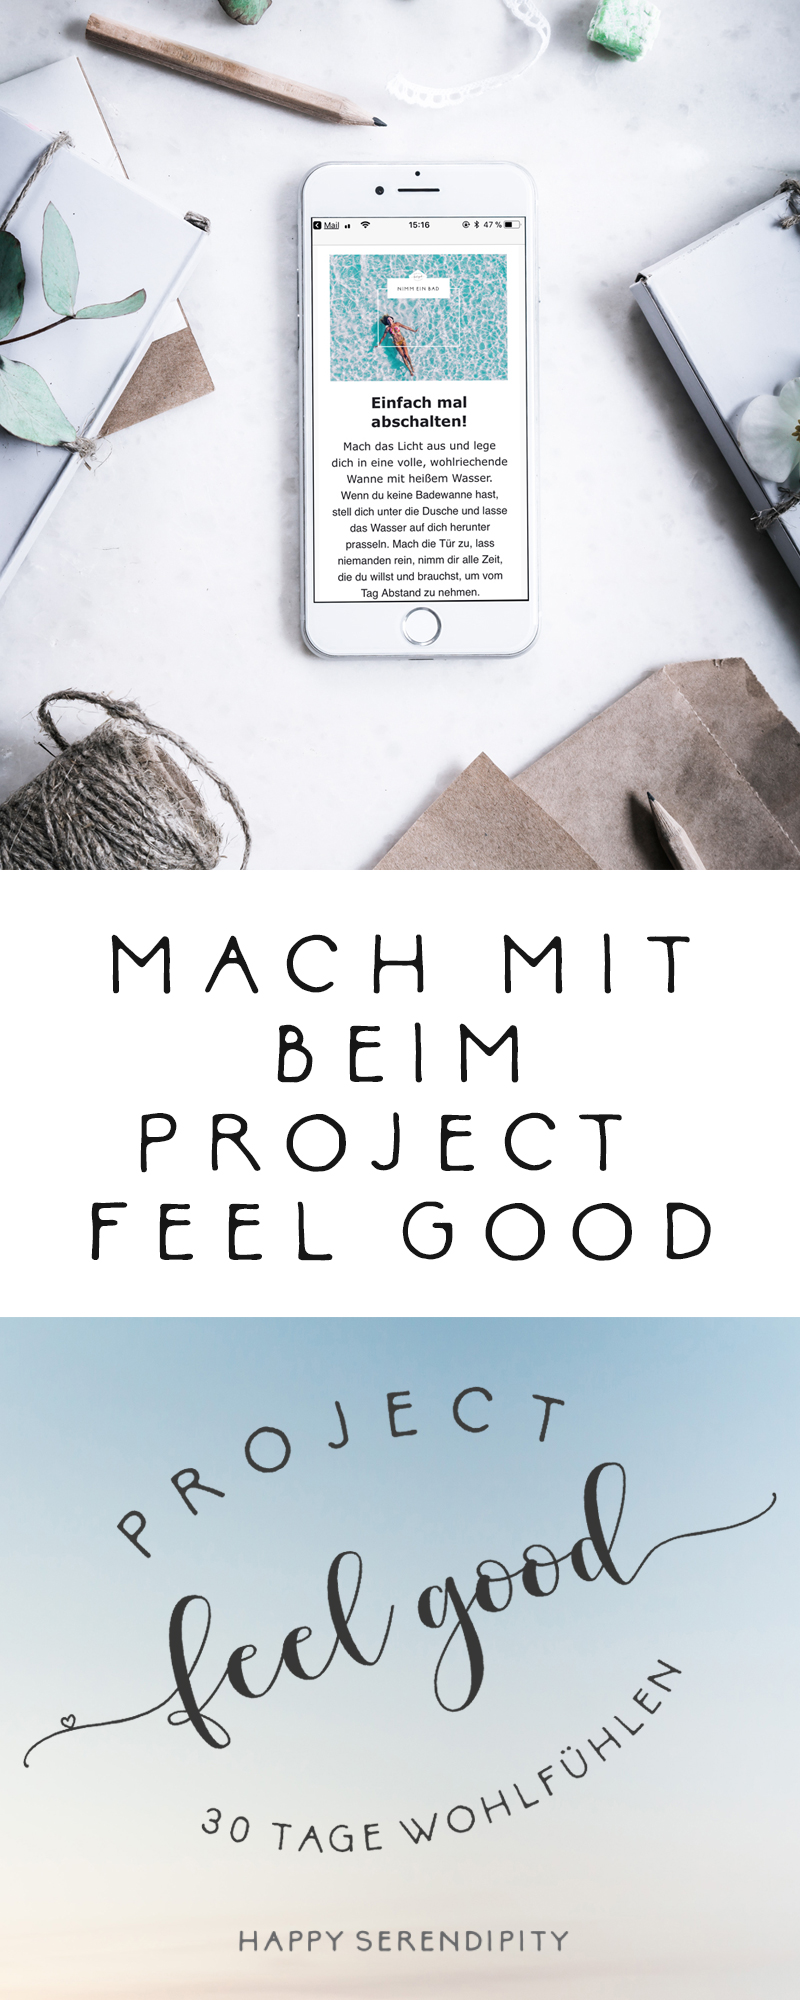 Mach mit beim Project Feel Good bei Happy Serendipity